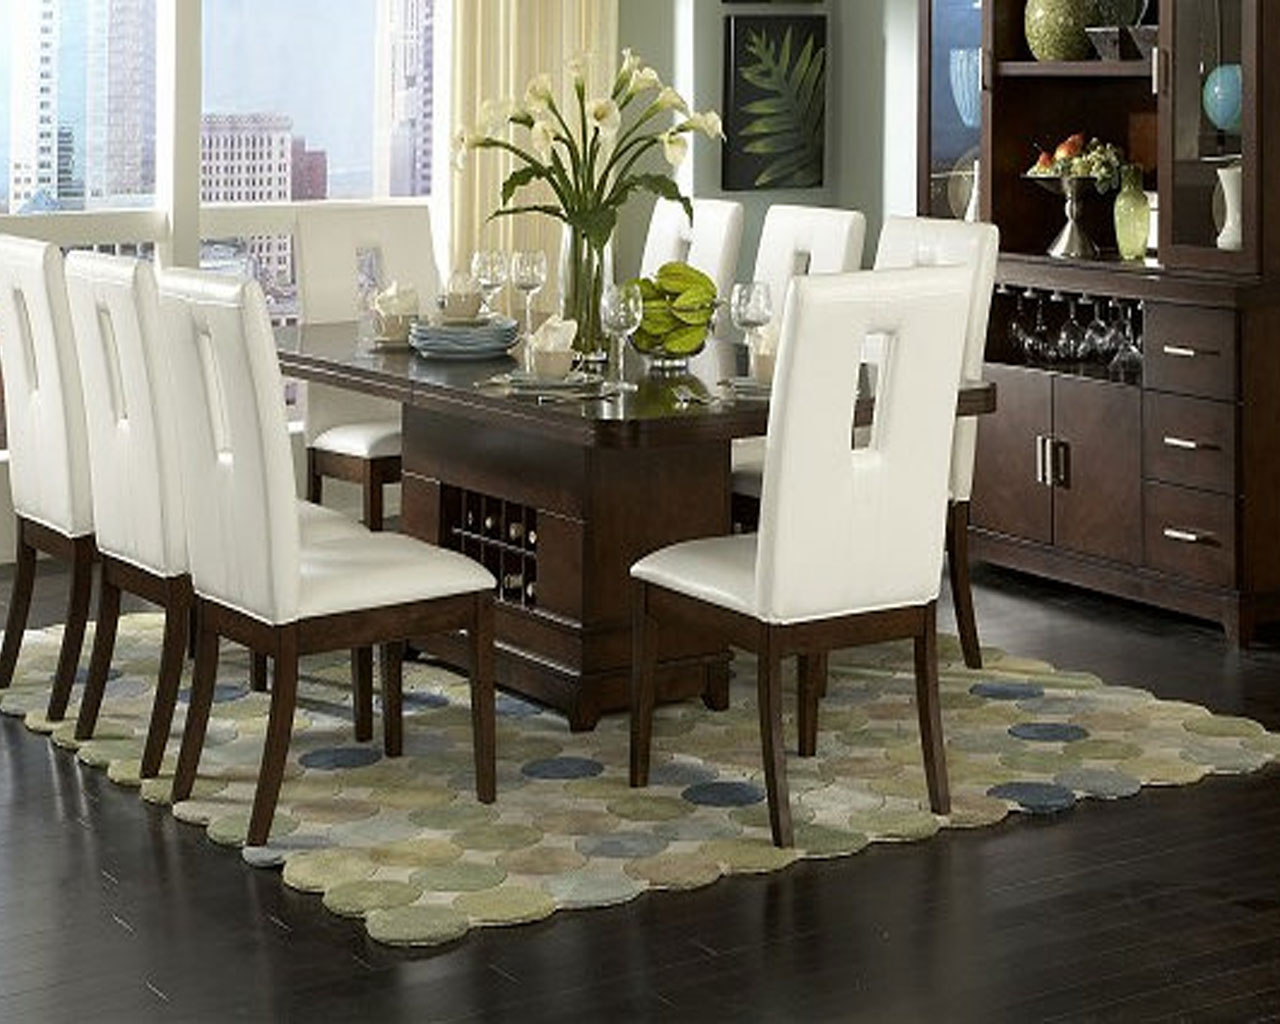 Vanity What To Put In The Middle Of Your Kitchen Table Centerpieces And Eight Seats Acnn Decor